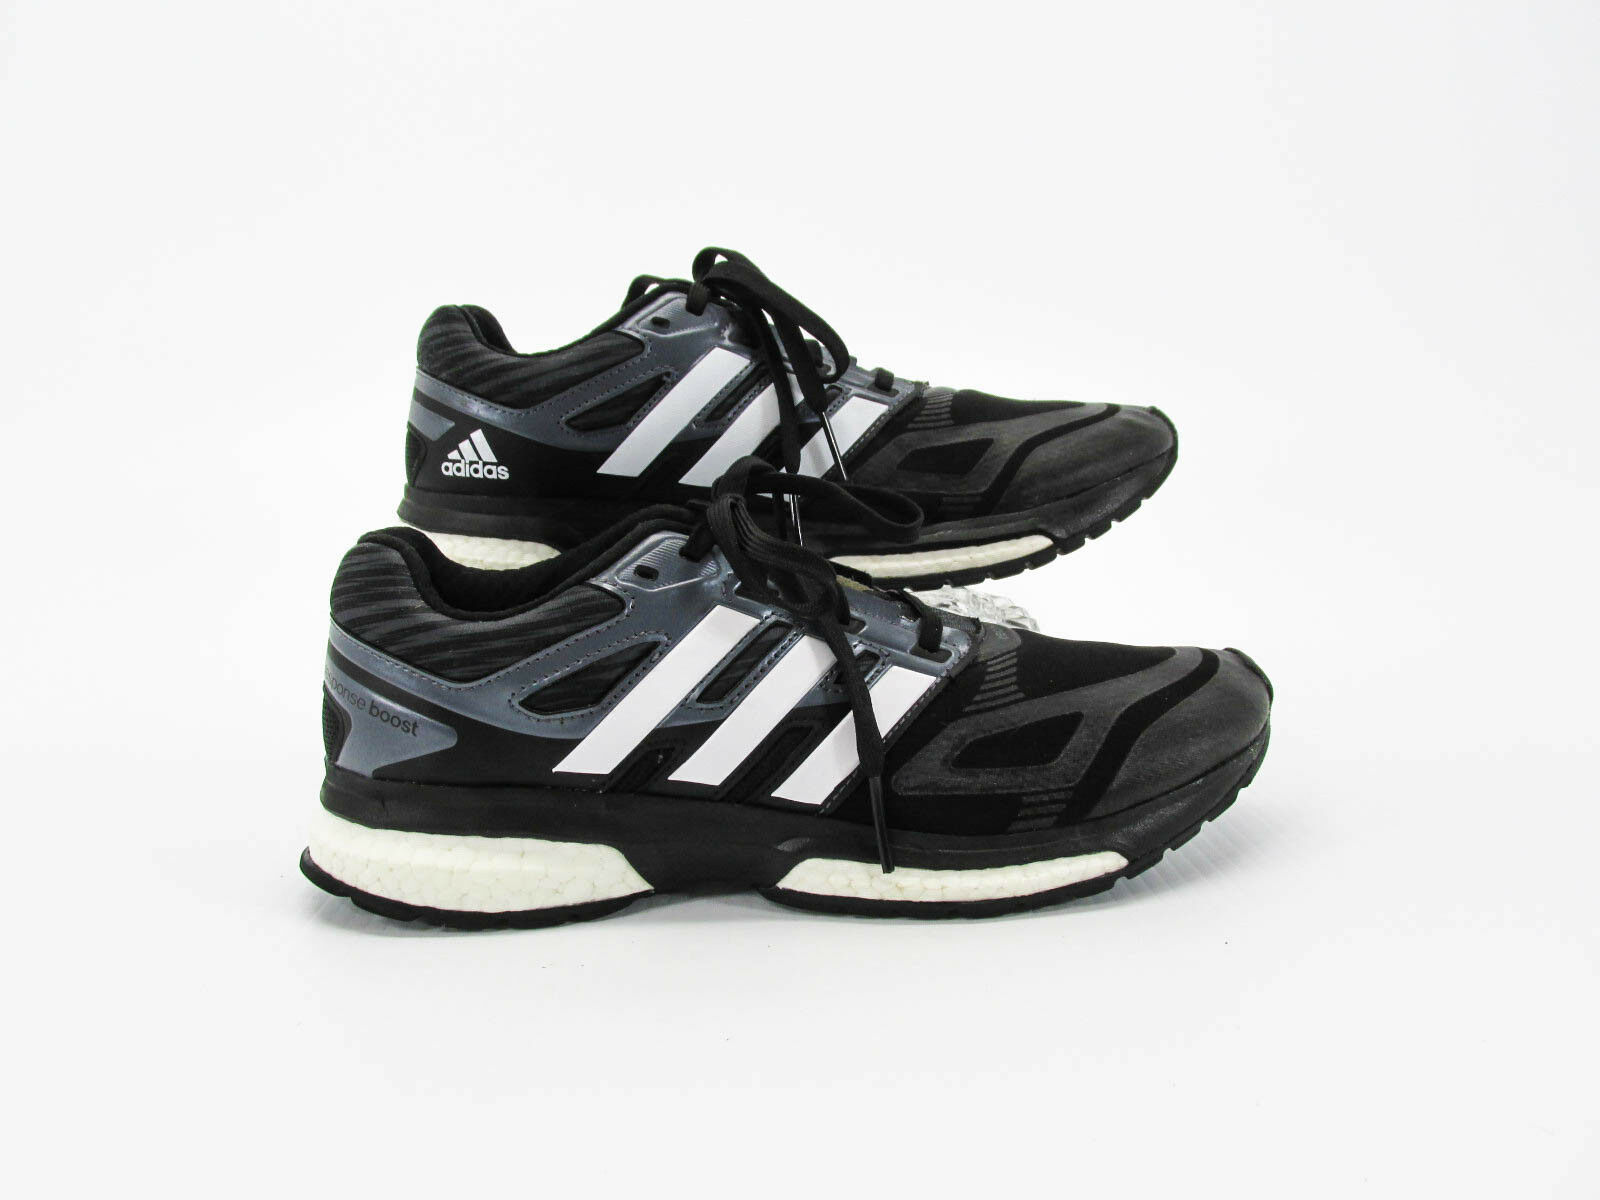 Adidas Response Boost Techfit Men Black Athletic Training shoes 8M Pre Owned CQ